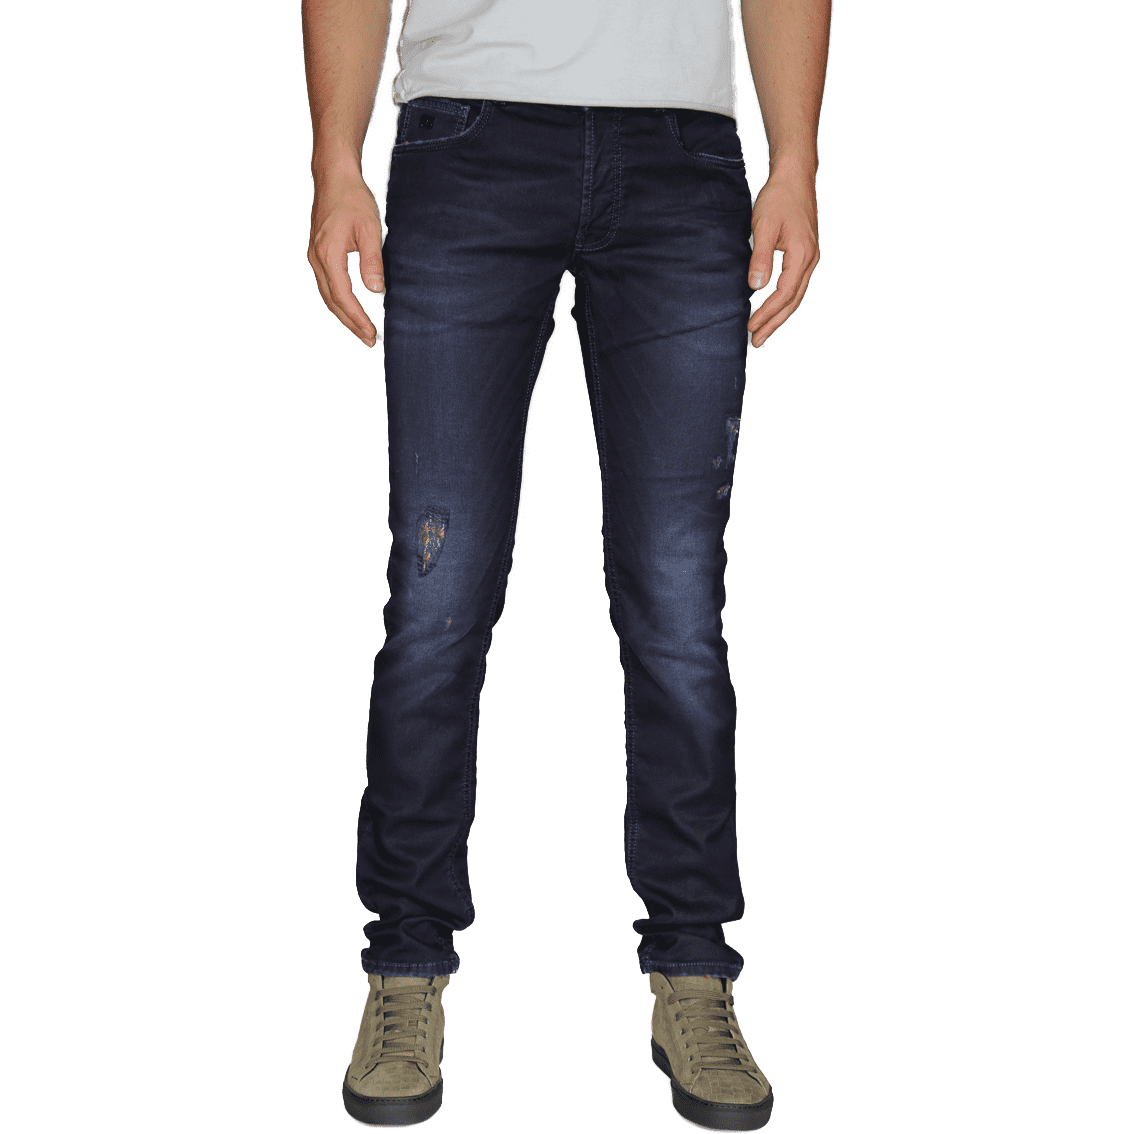 Cabinero Stiles Berlin PG Enjoy Jeans, Herrenhosen, made in Italy AW17-18 denim Blue-Red